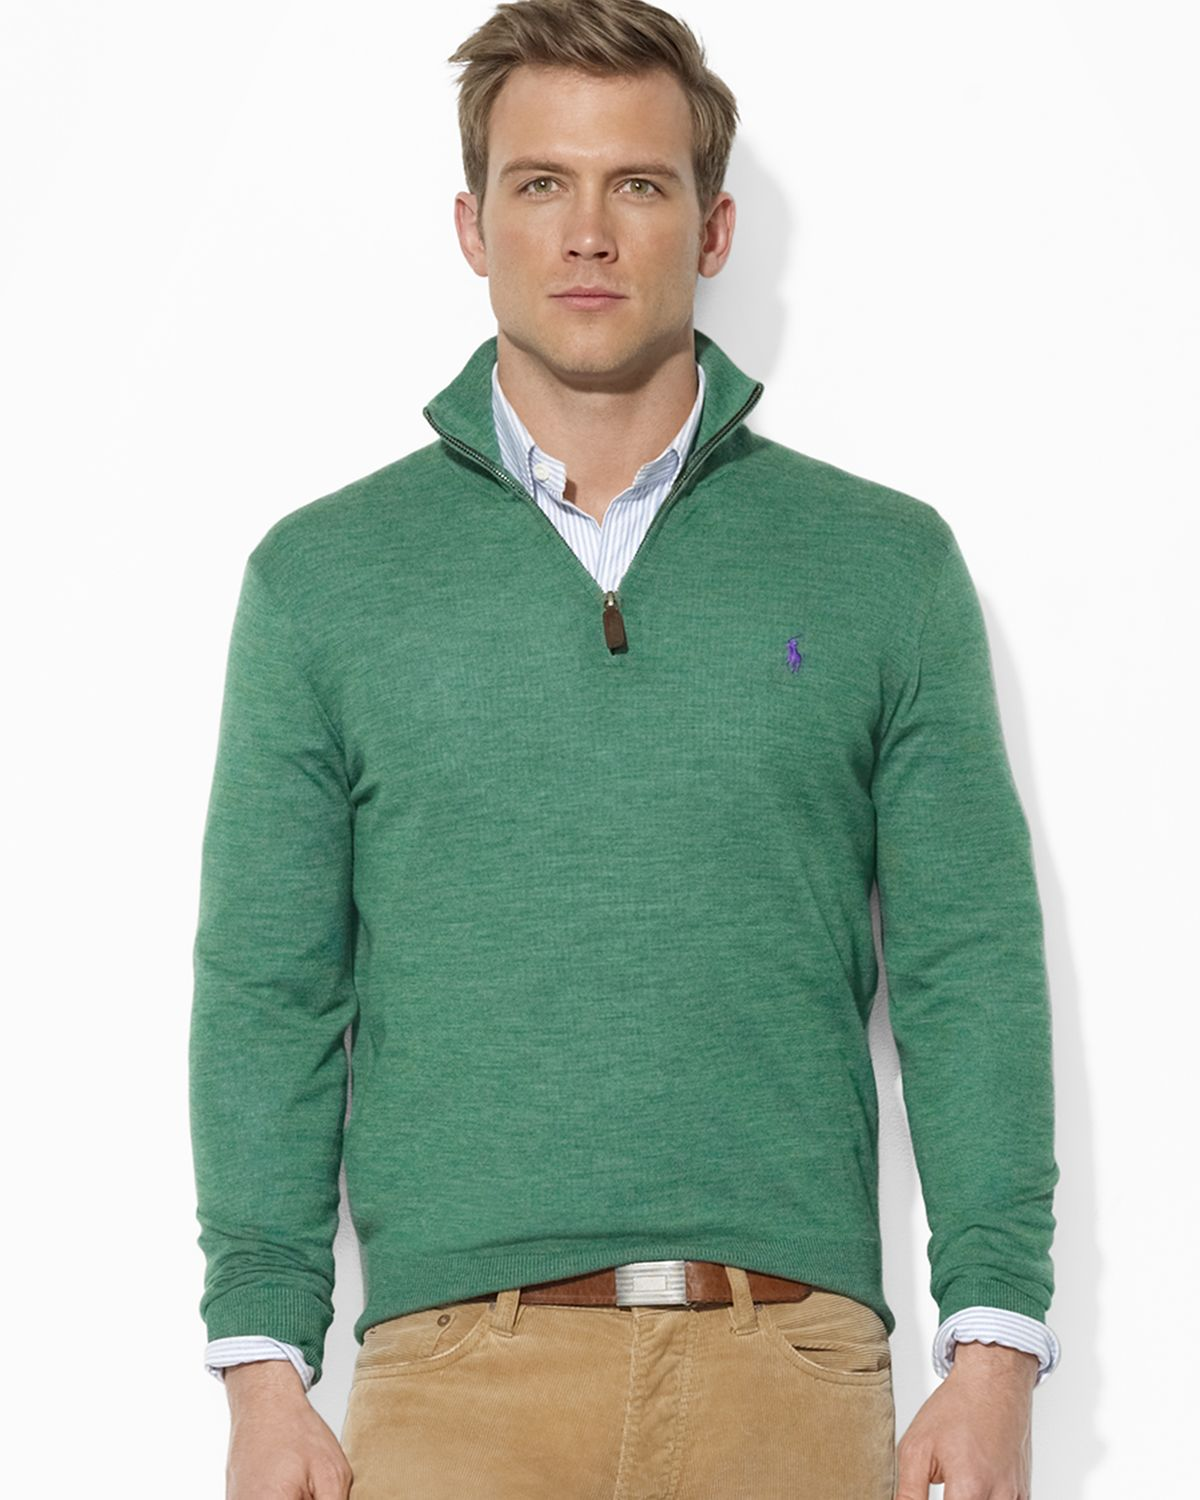 Classic Ladies Green Aran Sweater. Rating: 92 % of 9 Reviews. Was $ Women's Aran Sweaters & Cardigans Each one is beautifully crafted using only the finest yarns to produce easy to wear merino wool sweaters as well as pieces in pure wool and cashmere blends.